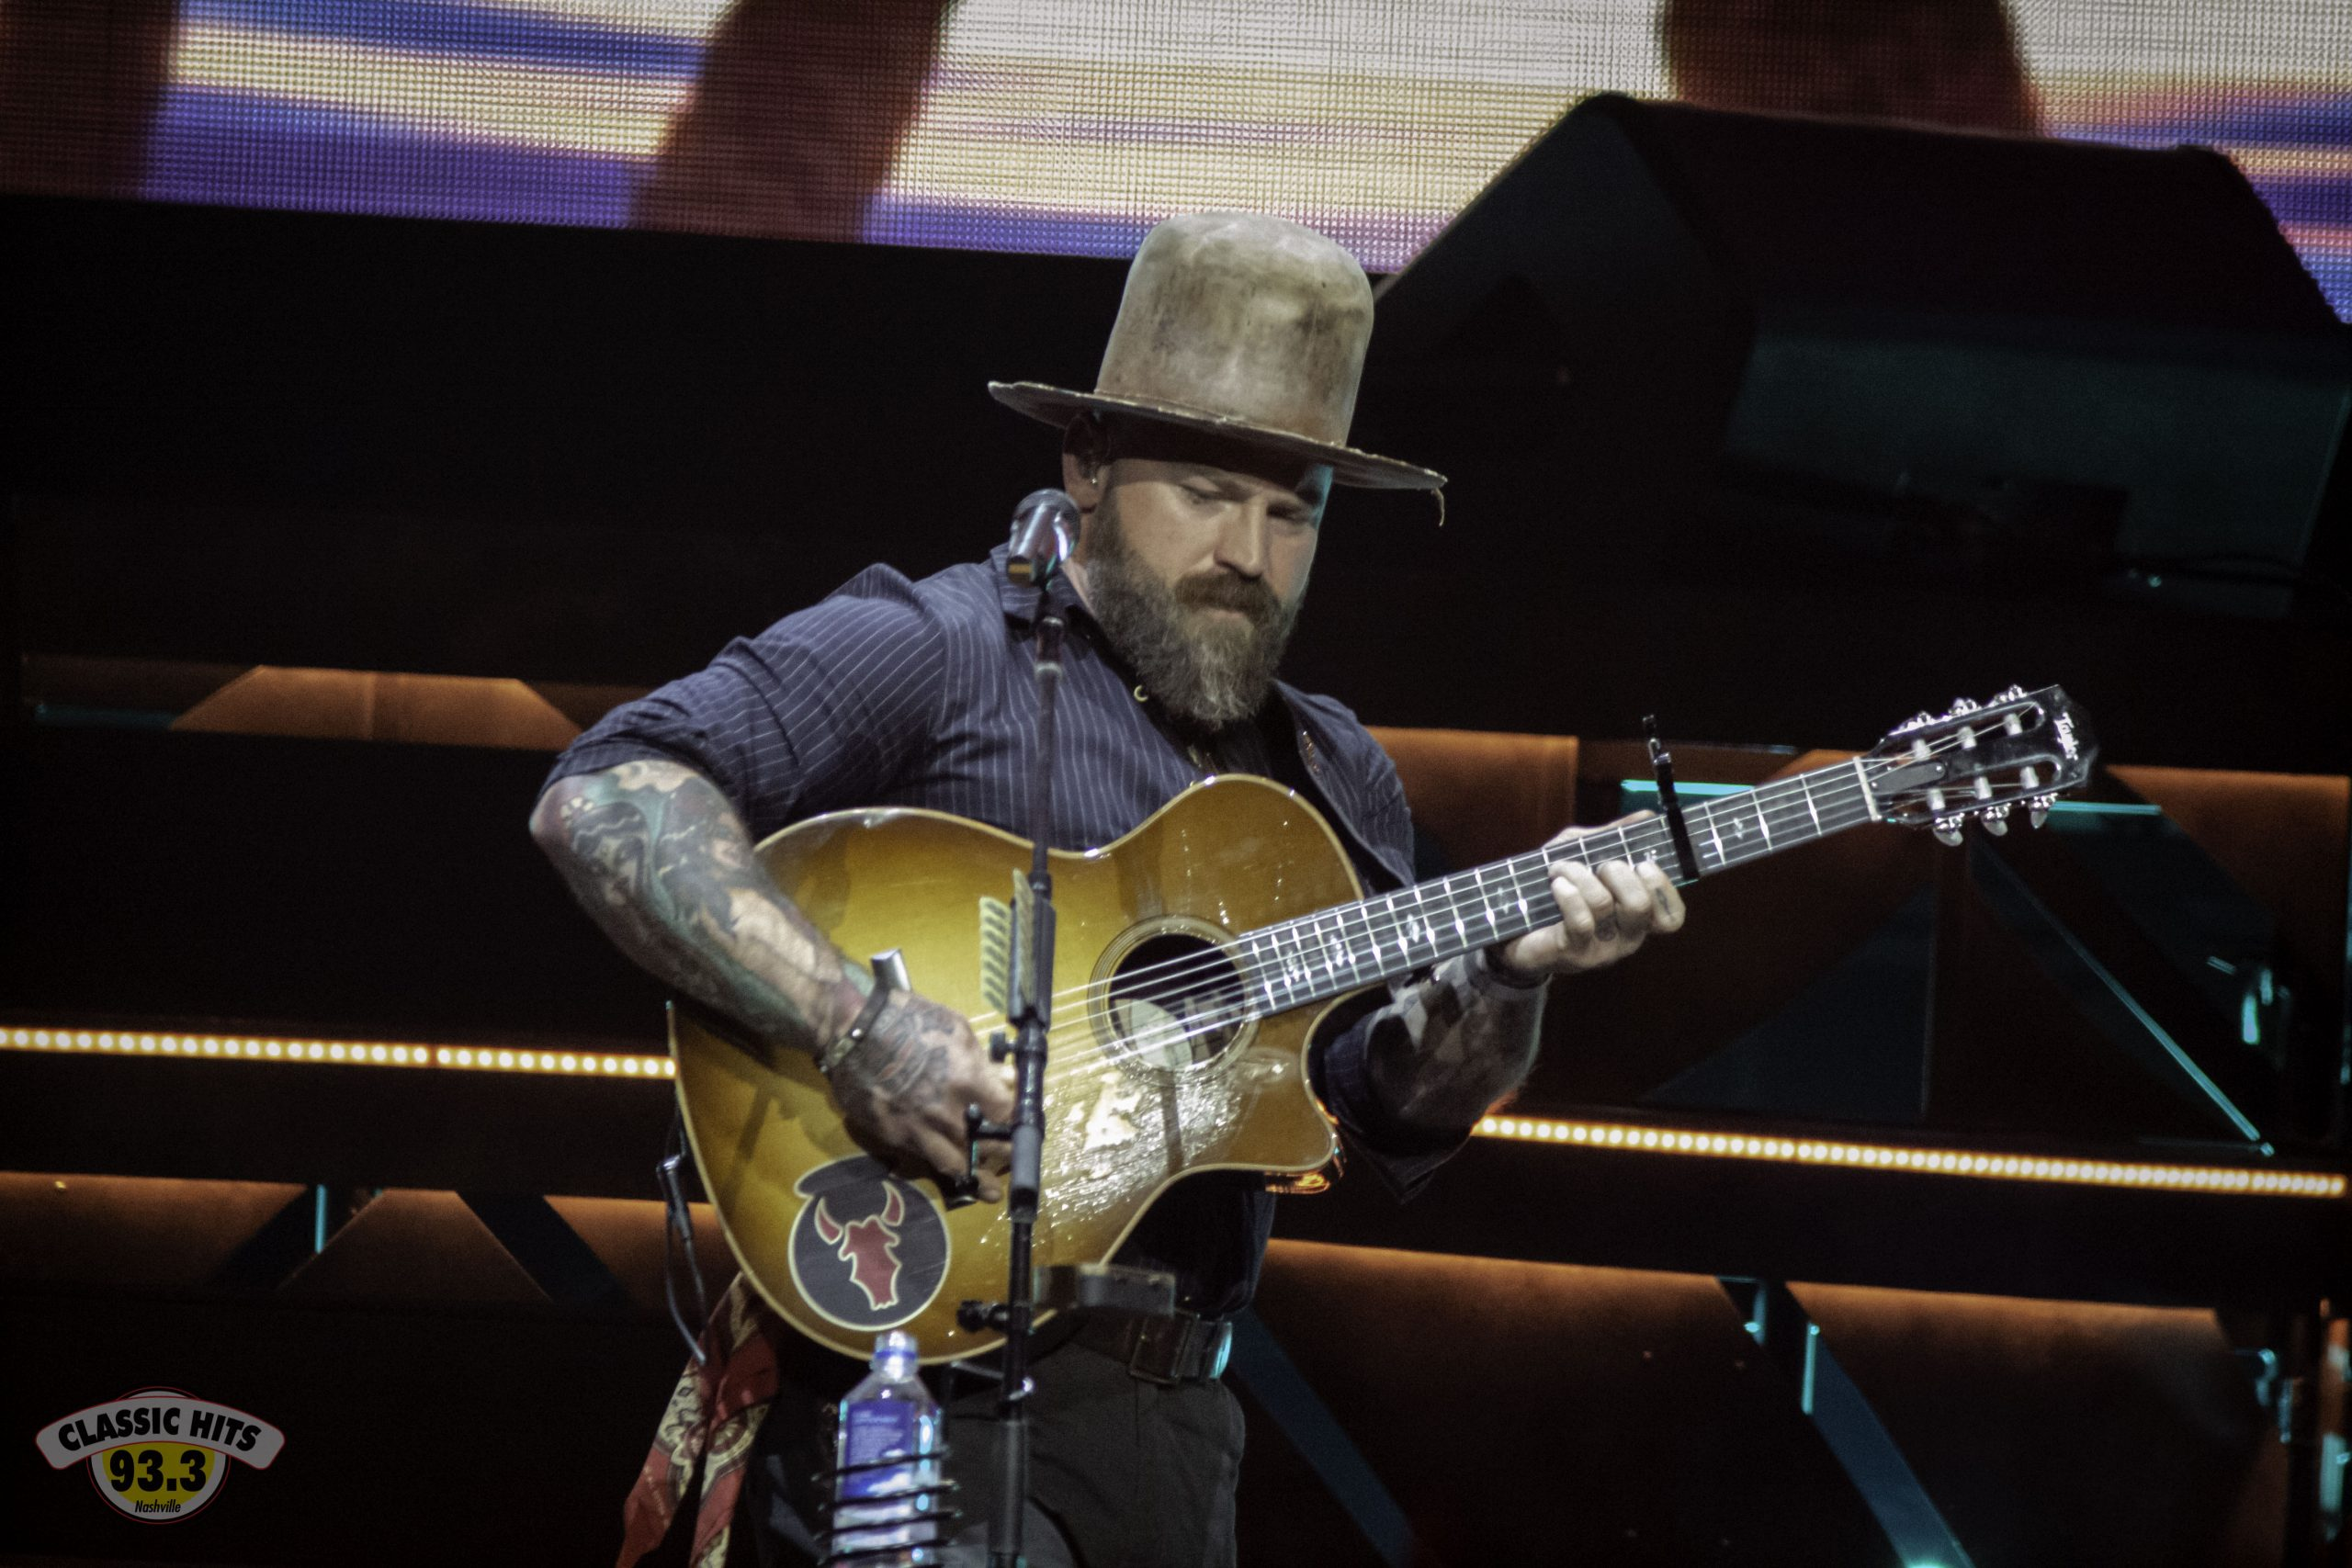 Zac Brown Band at Bridgestone Arena | 93 3 Classic Hits